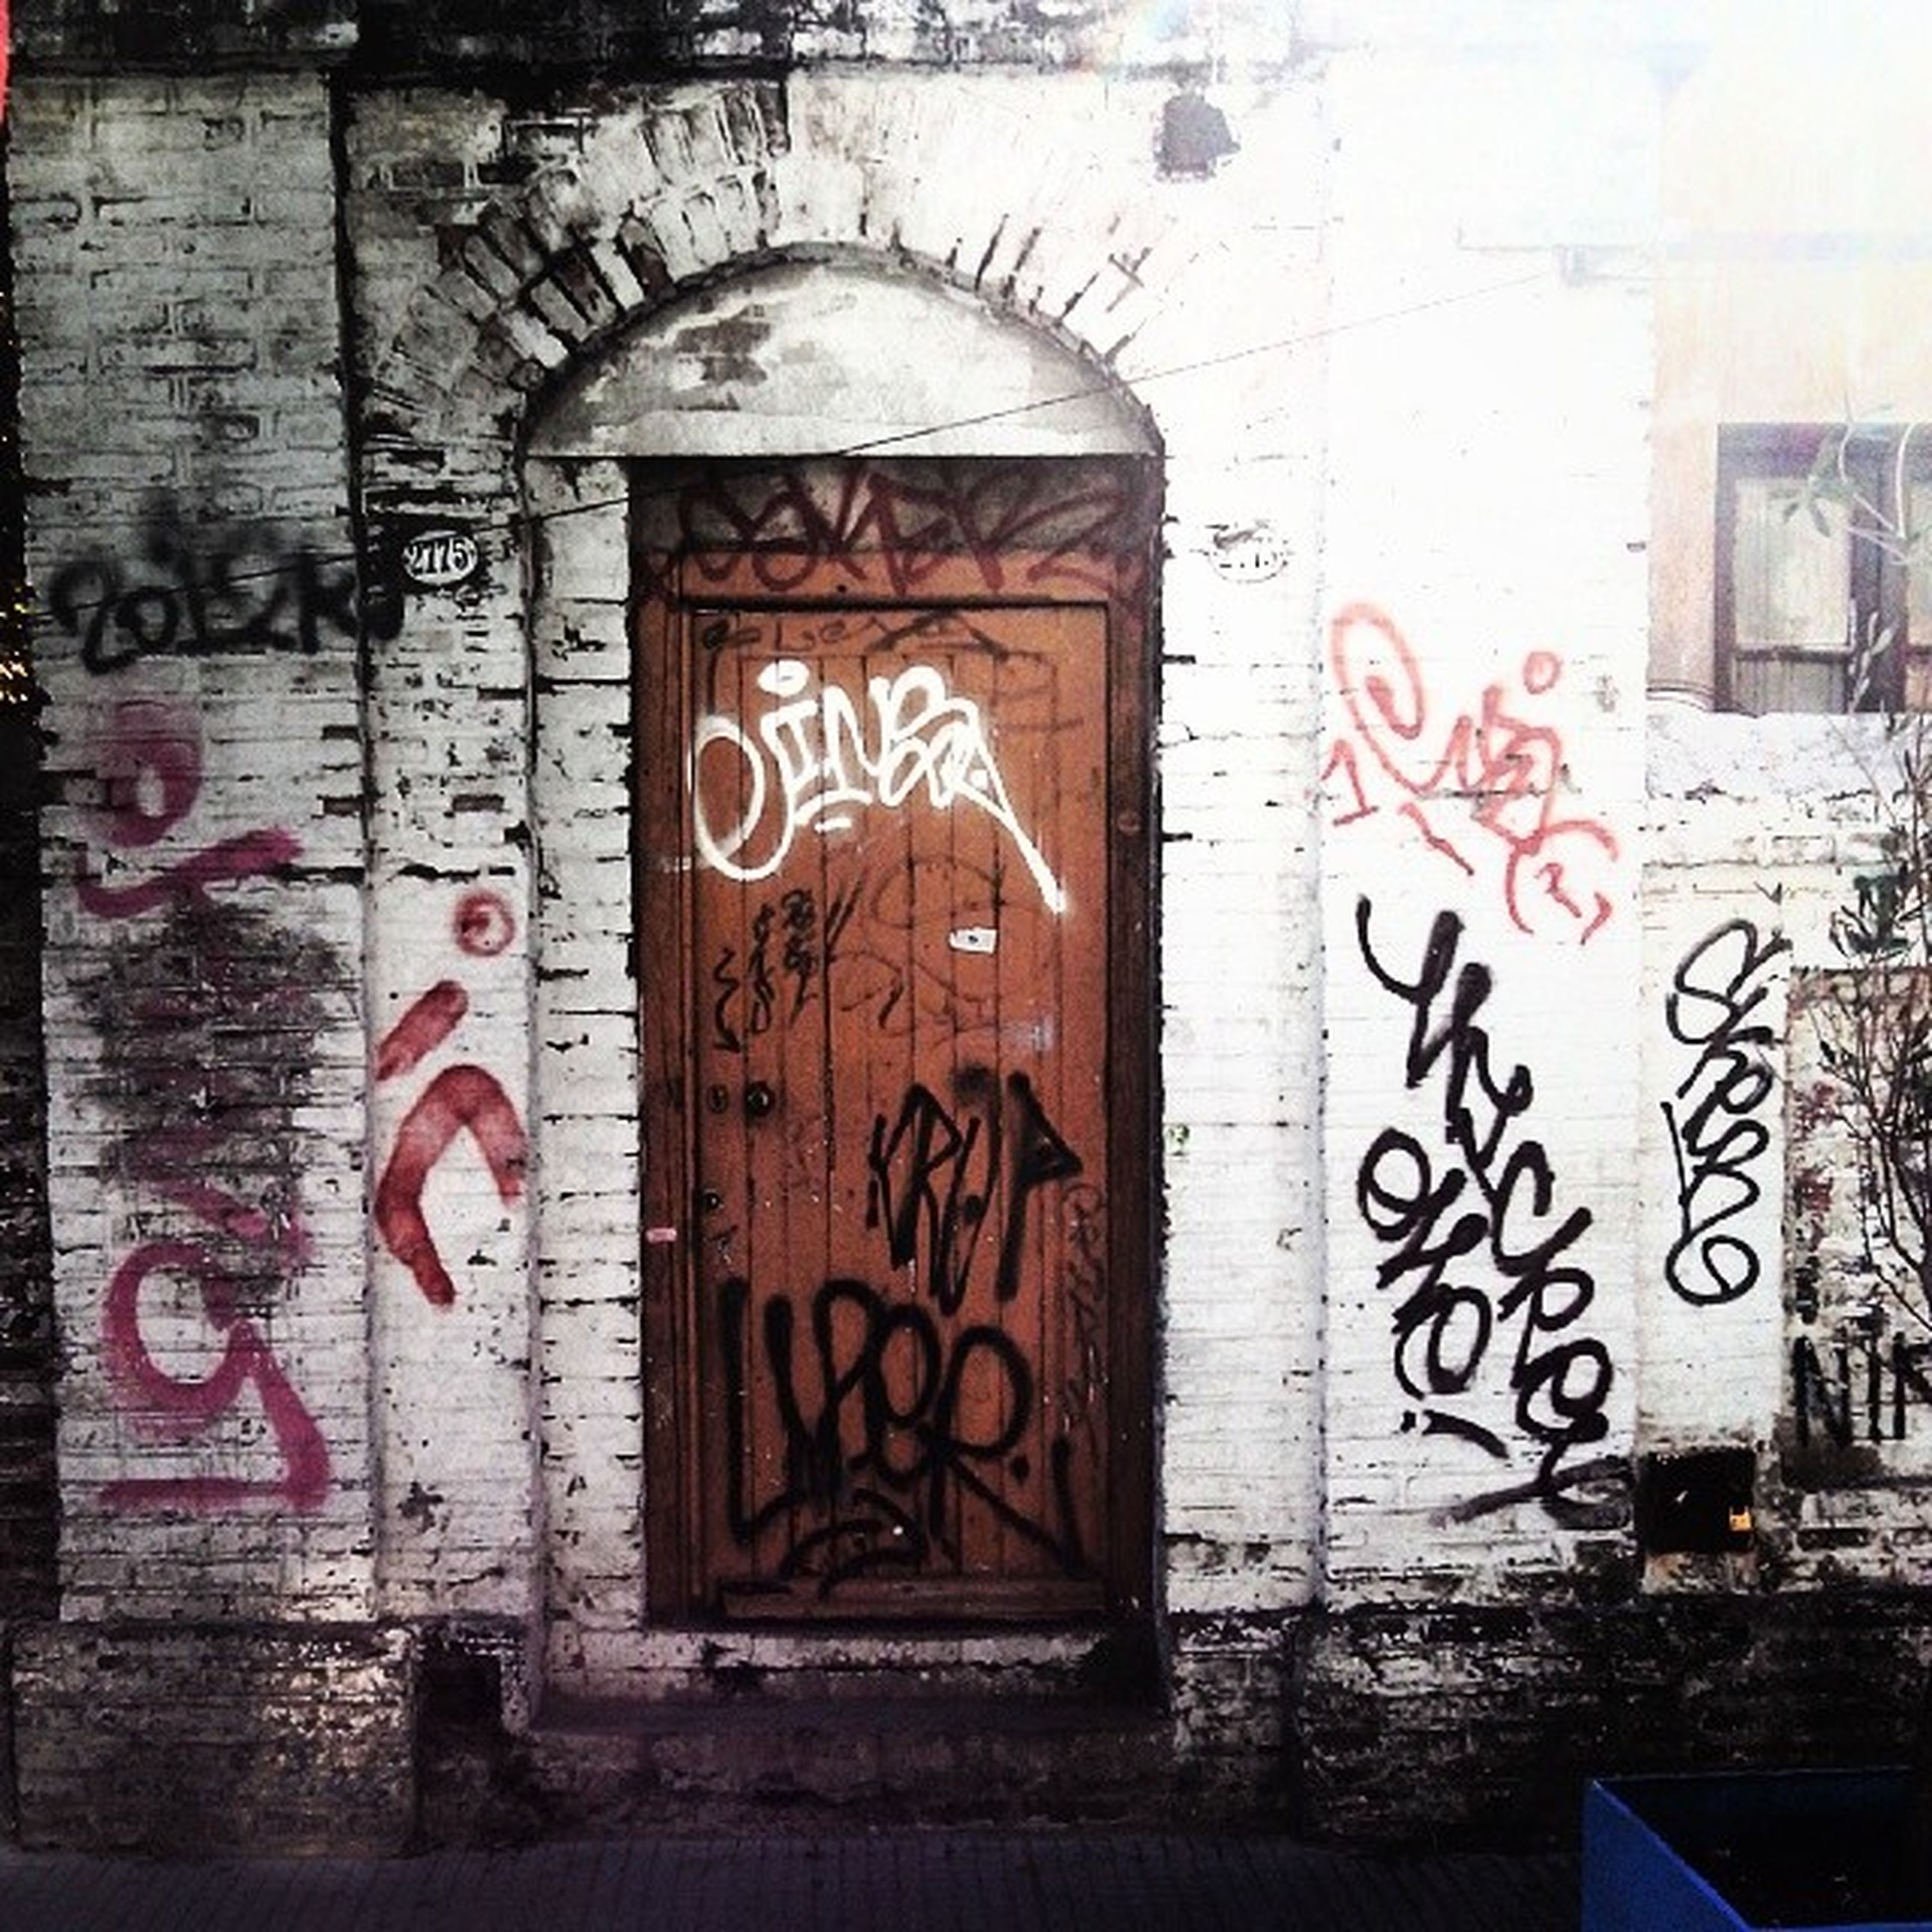 graffiti, architecture, built structure, wall - building feature, text, building exterior, western script, wall, communication, brick wall, weathered, door, art, creativity, old, abandoned, damaged, art and craft, vandalism, street art